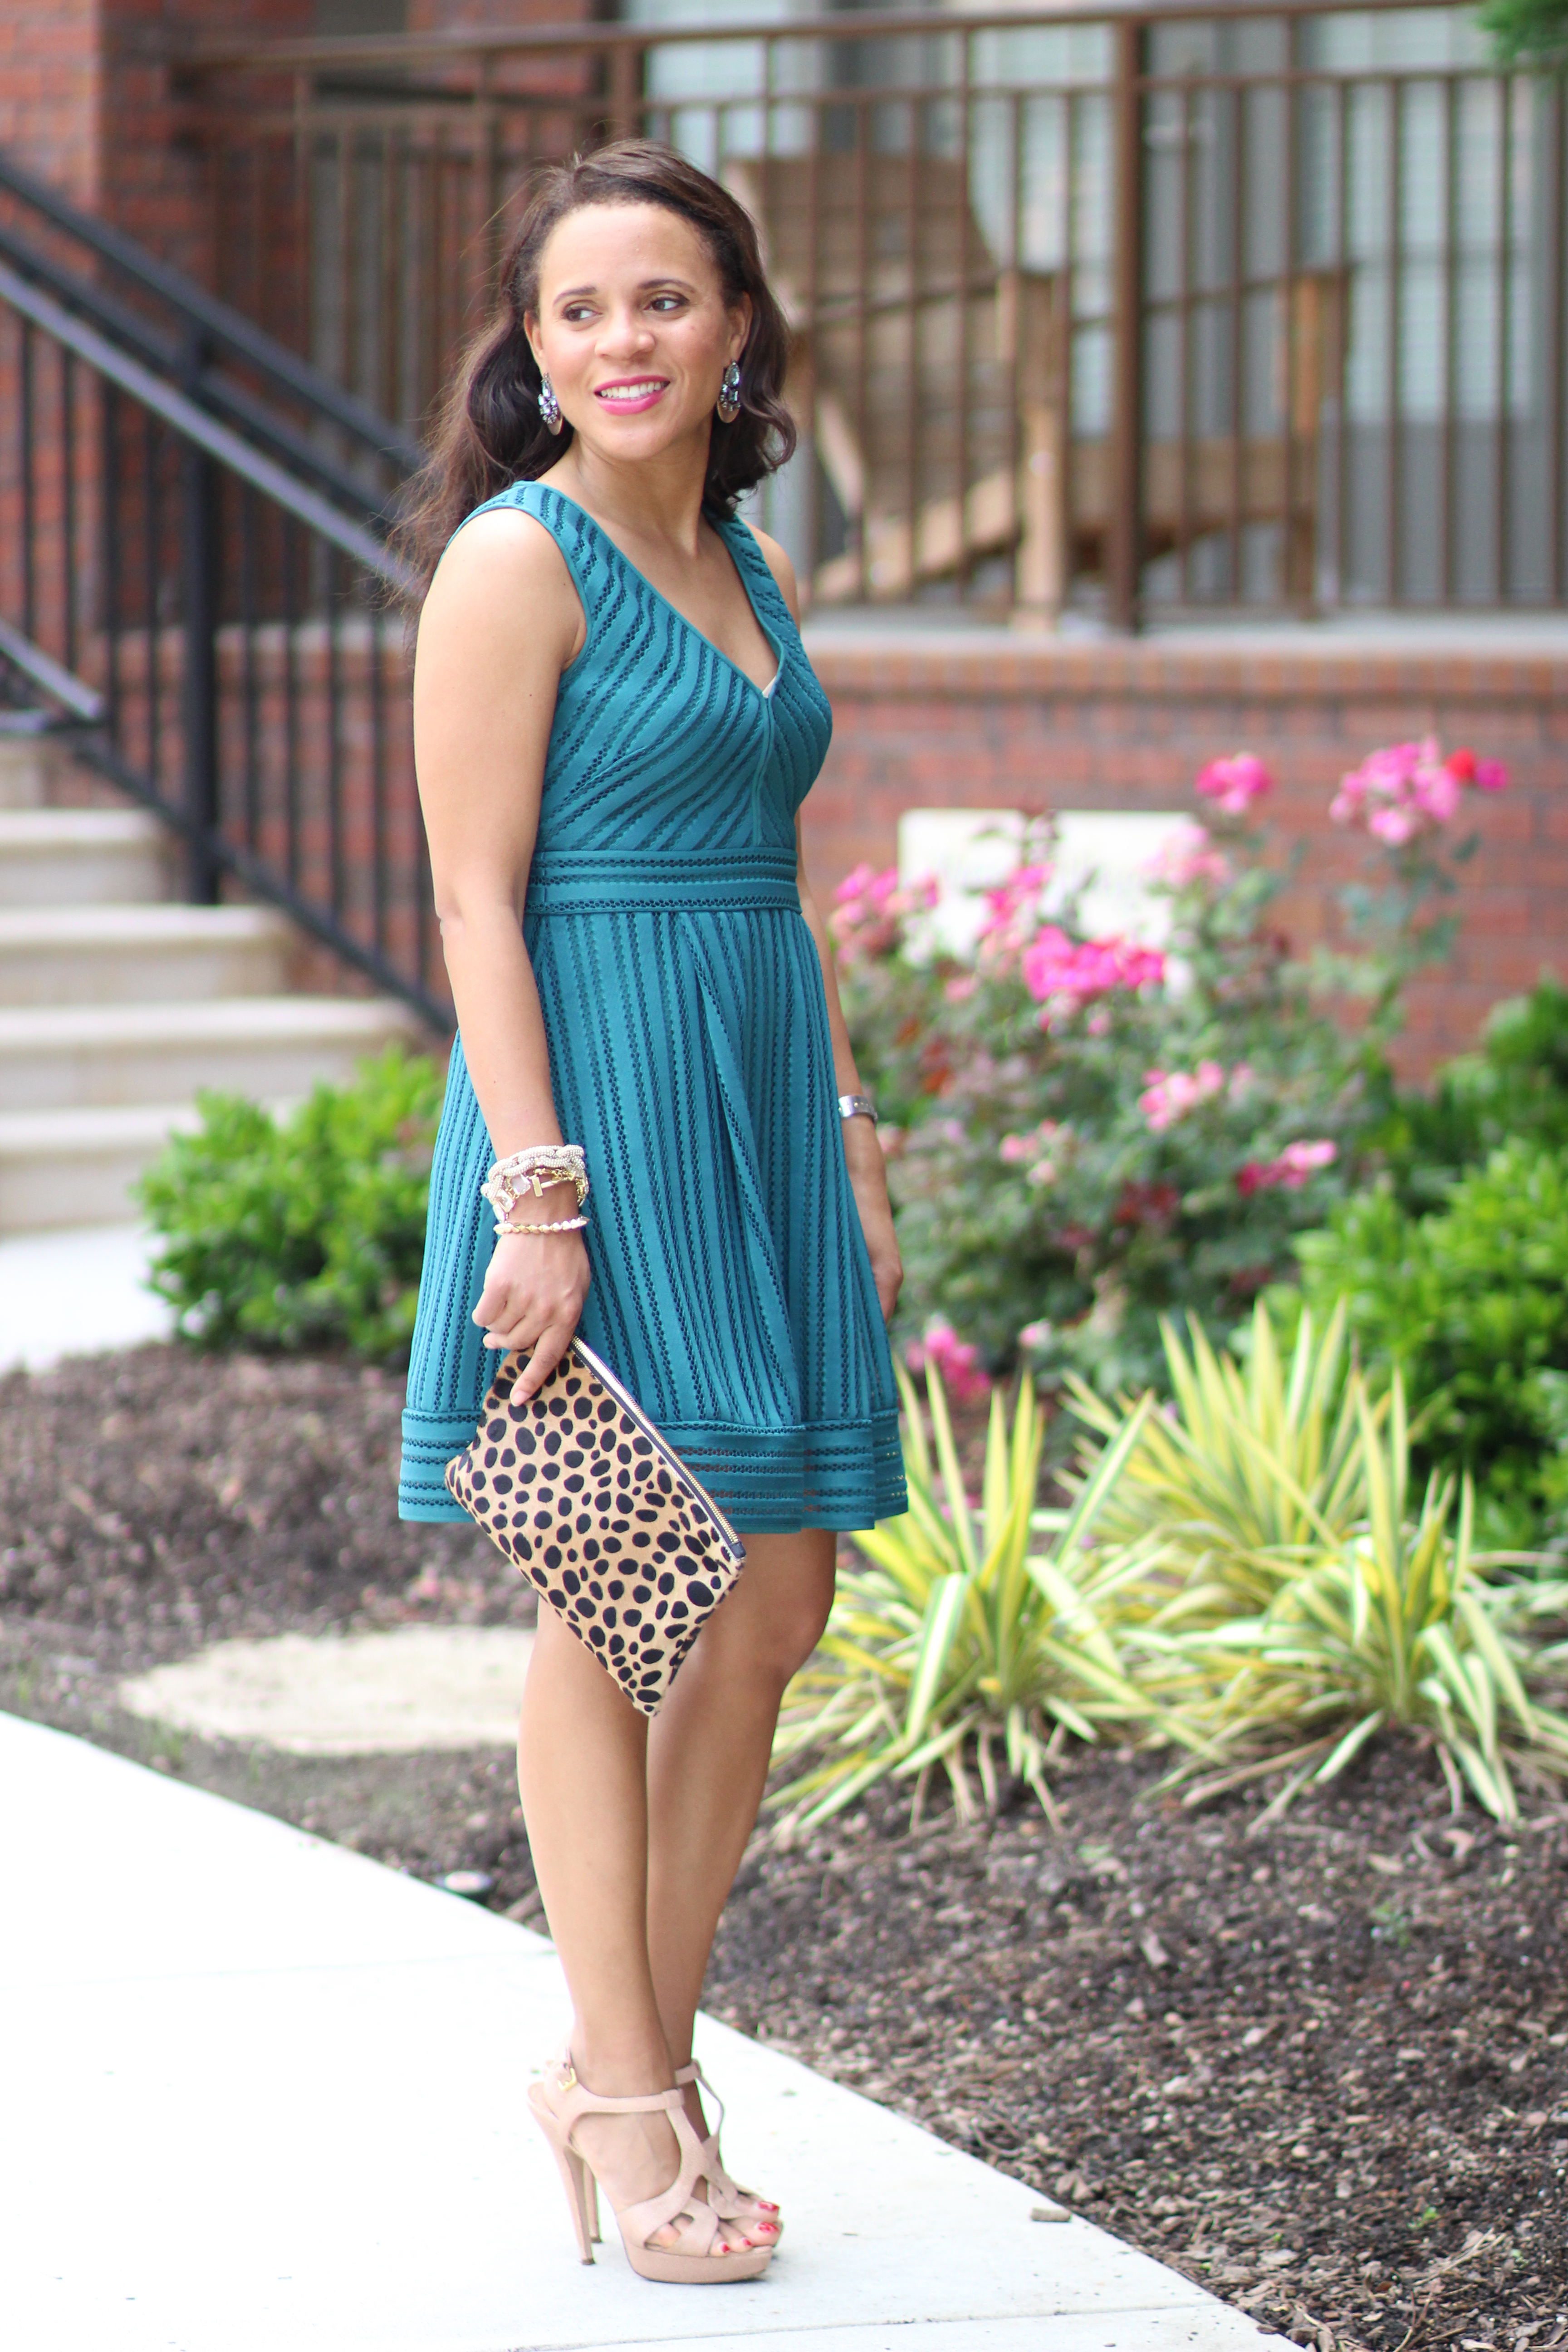 J Crew Striped Eyelet Dress - Nicole to the Nines